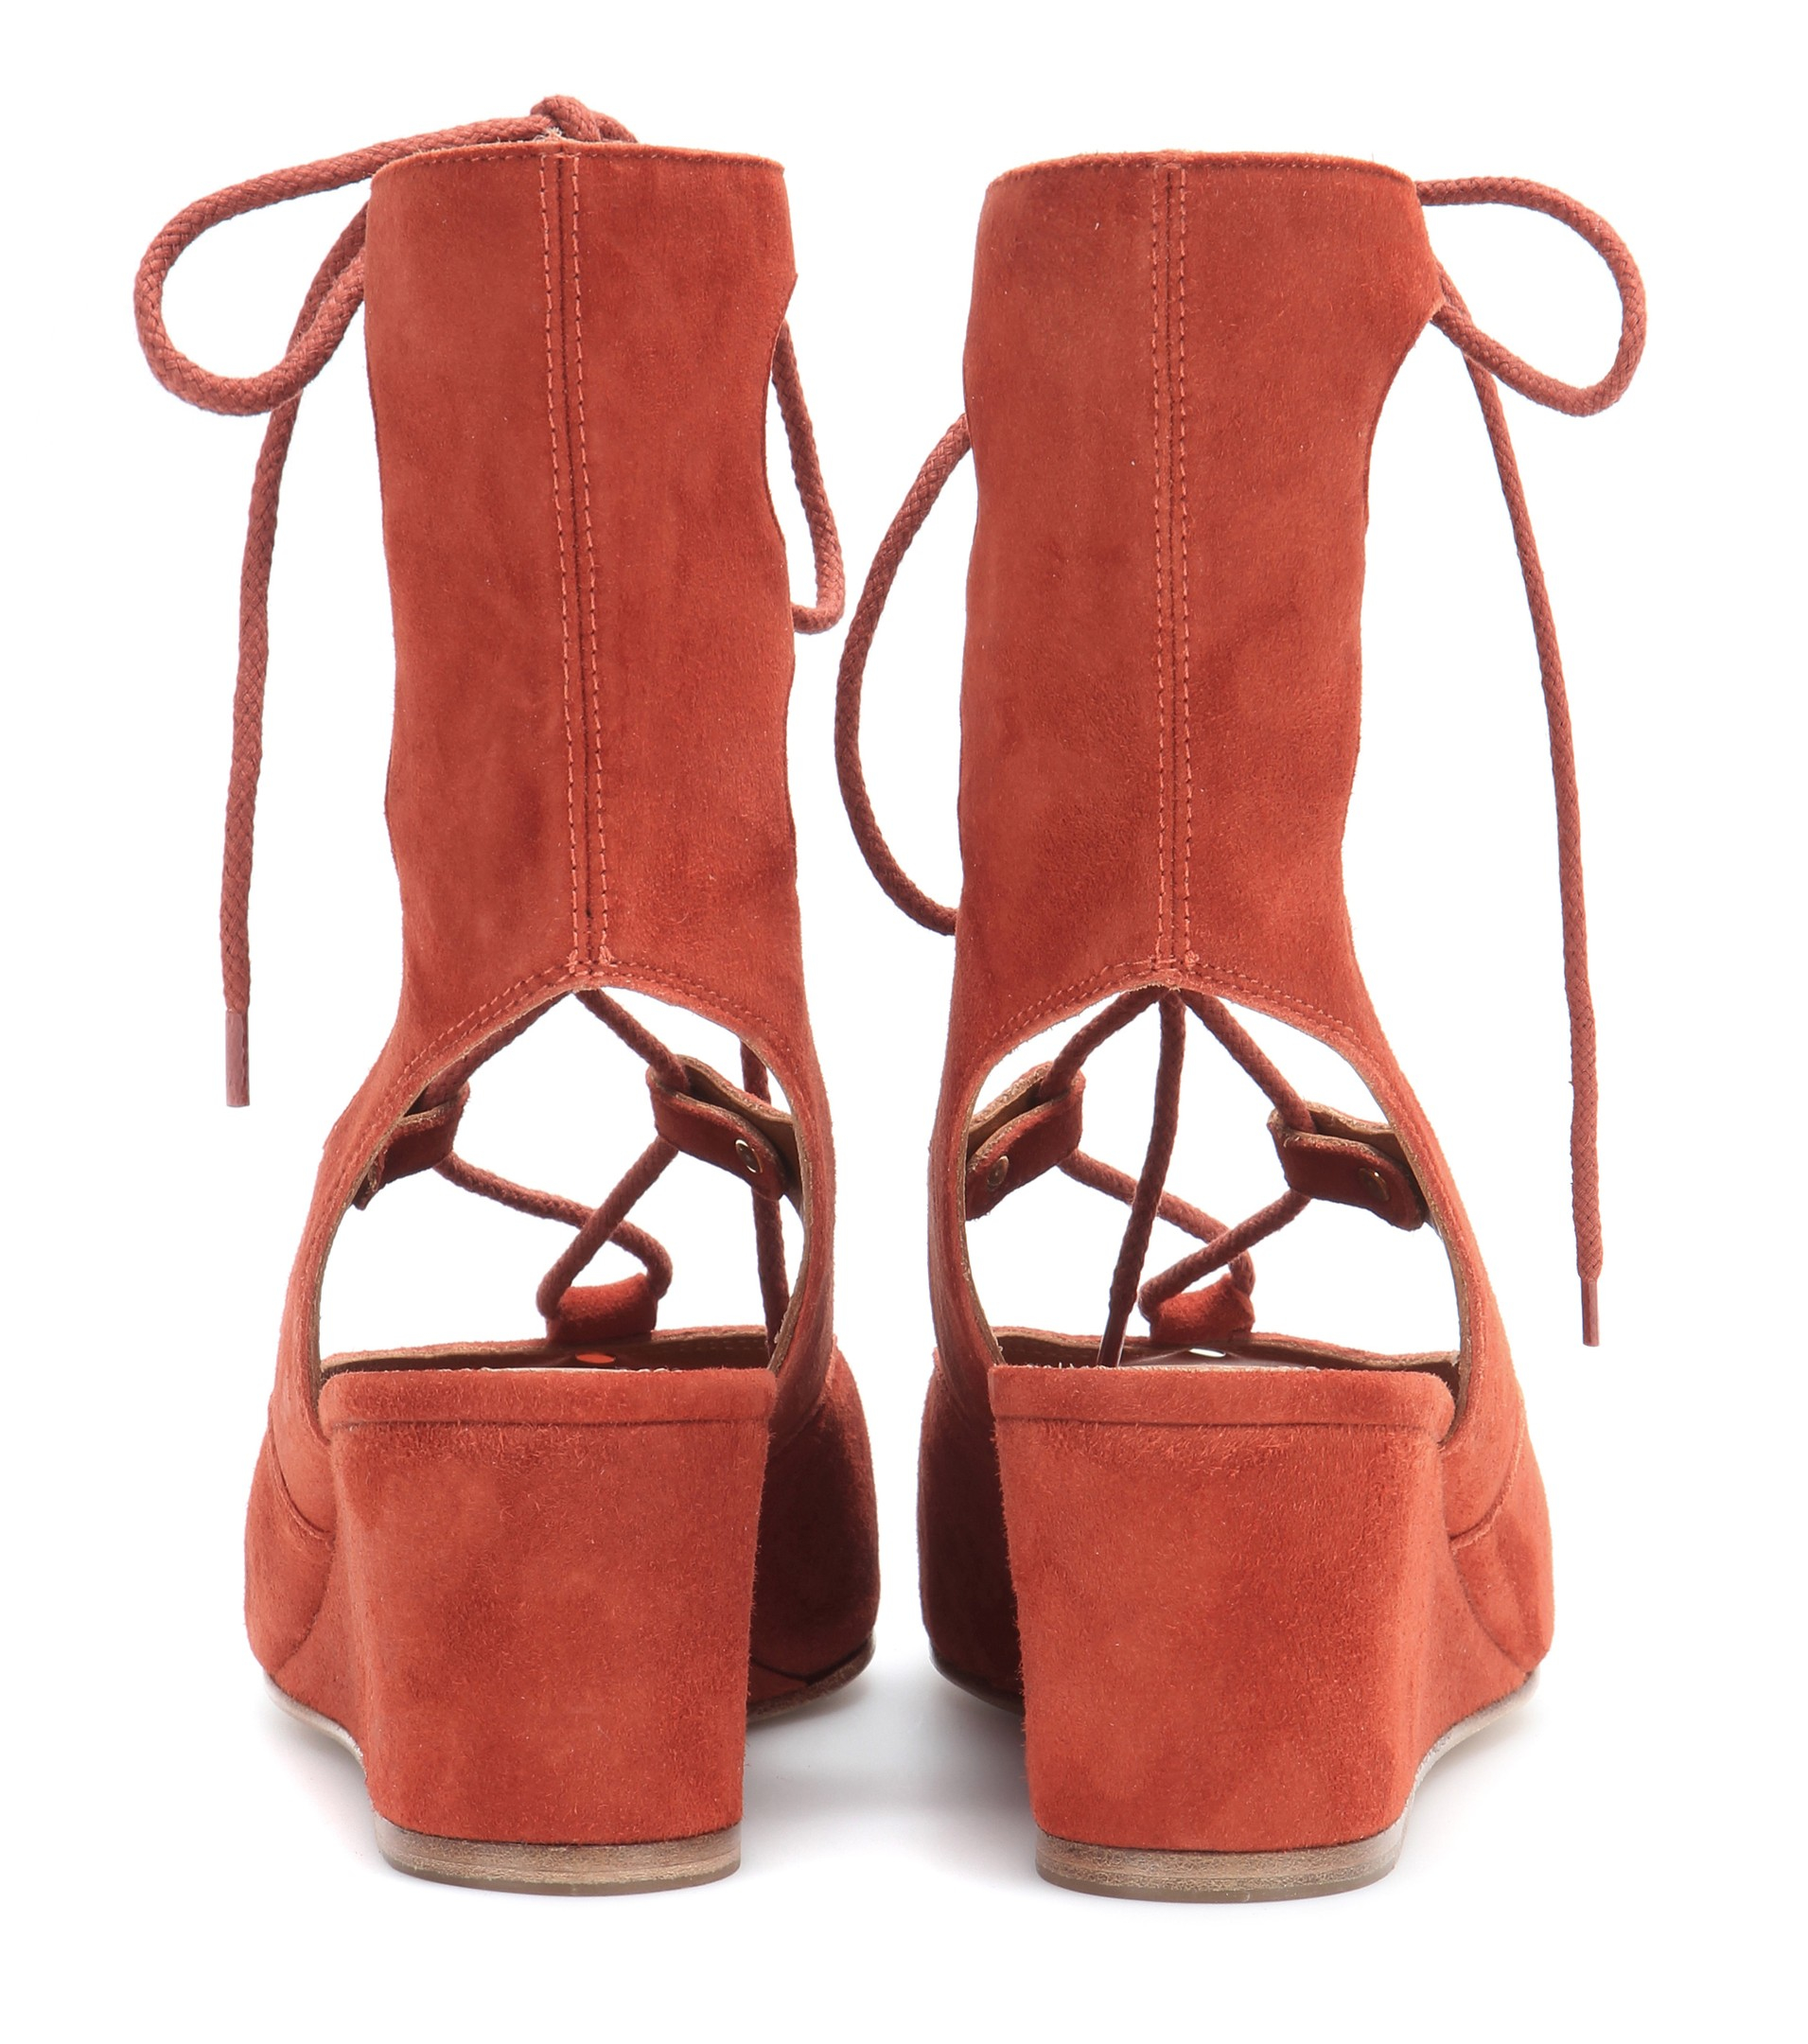 857d63518ac Lyst - Chloé Suede Gladiator Sandals in Brown